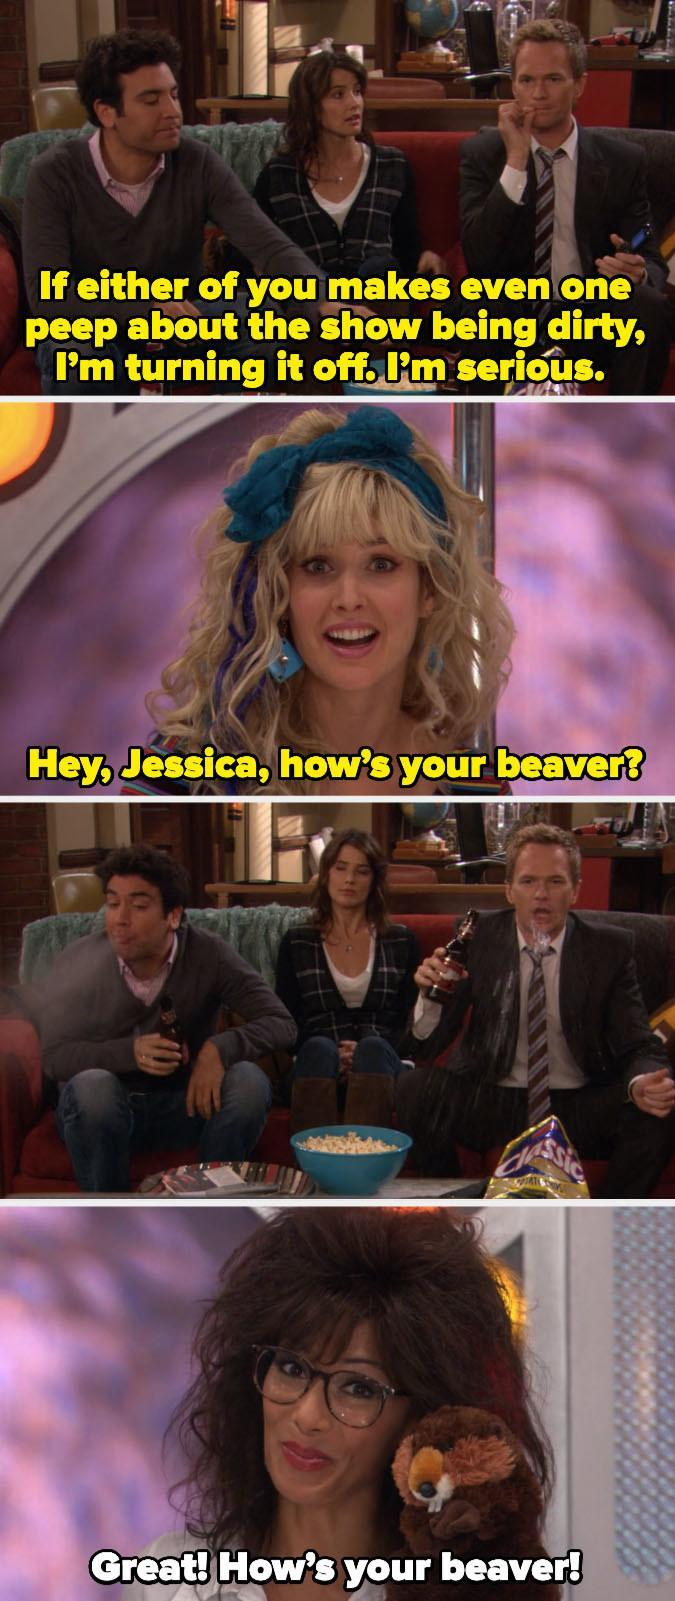 Nicole guest-starring as a cohost on a 90s TV show alongside Robin Sparkles